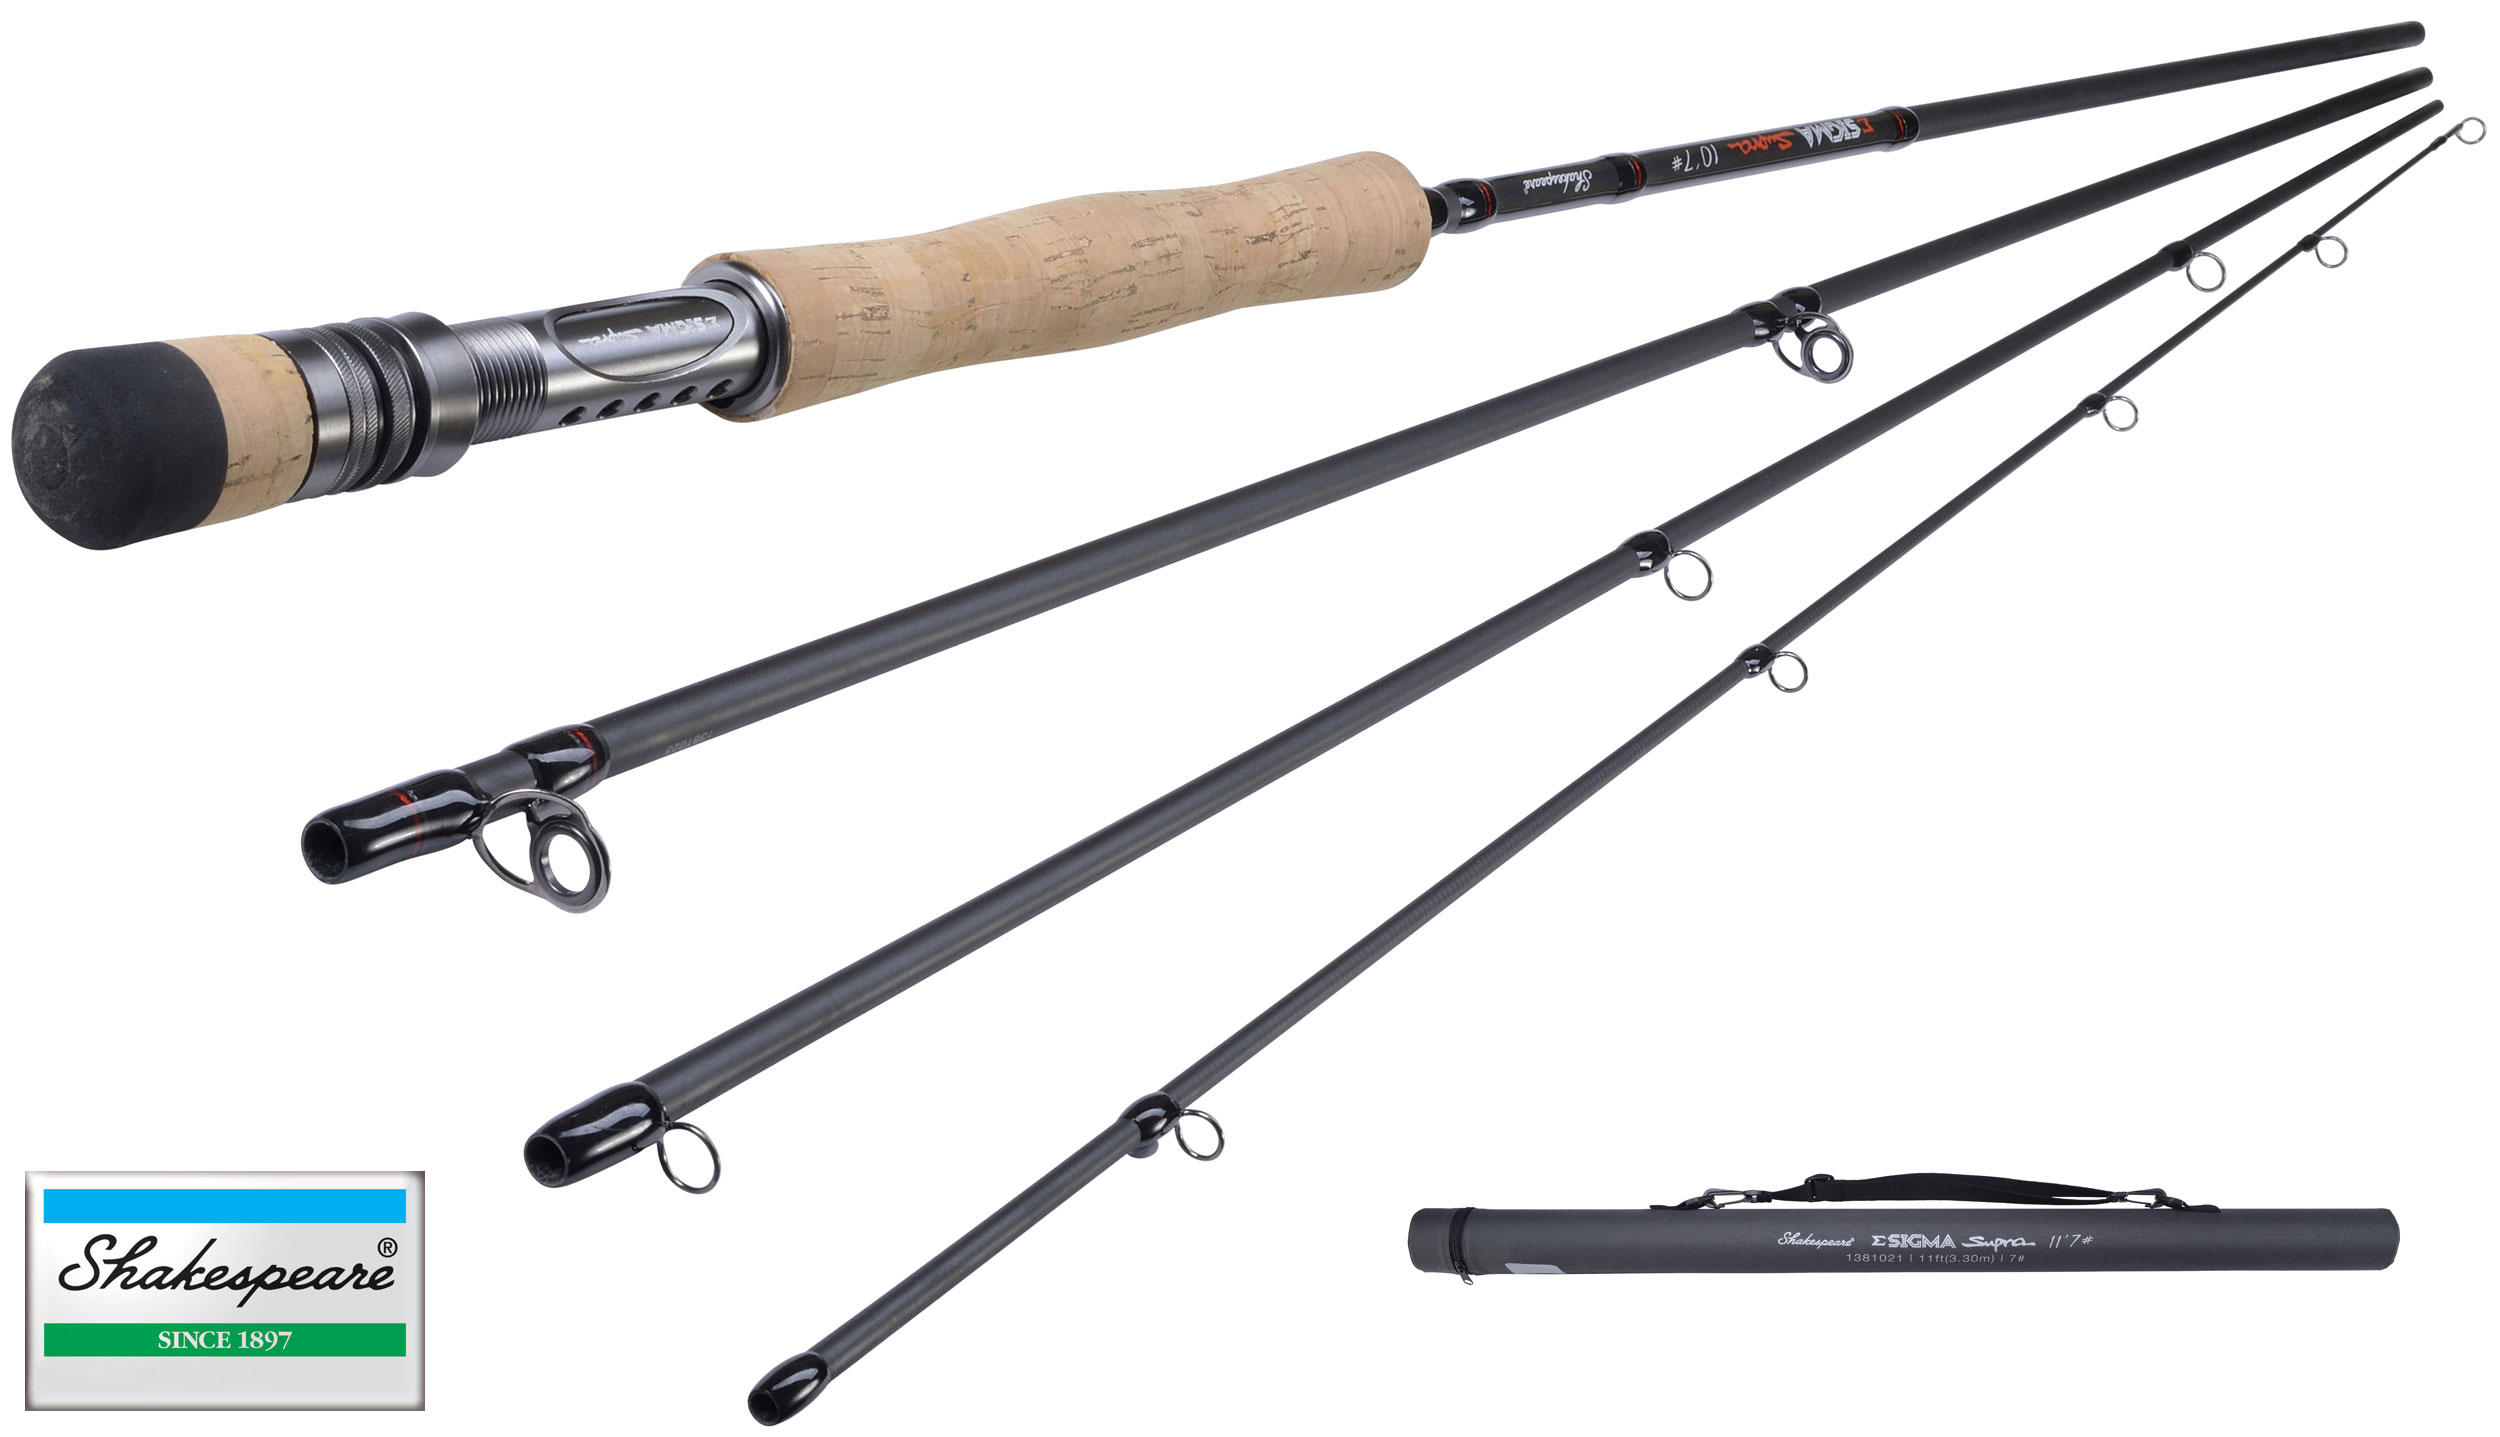 f2a422750b1c Sentinel New Shakespeare Sigma Supra Fly Fishing Rod 7ft - 11ft 4pc All  Models Available